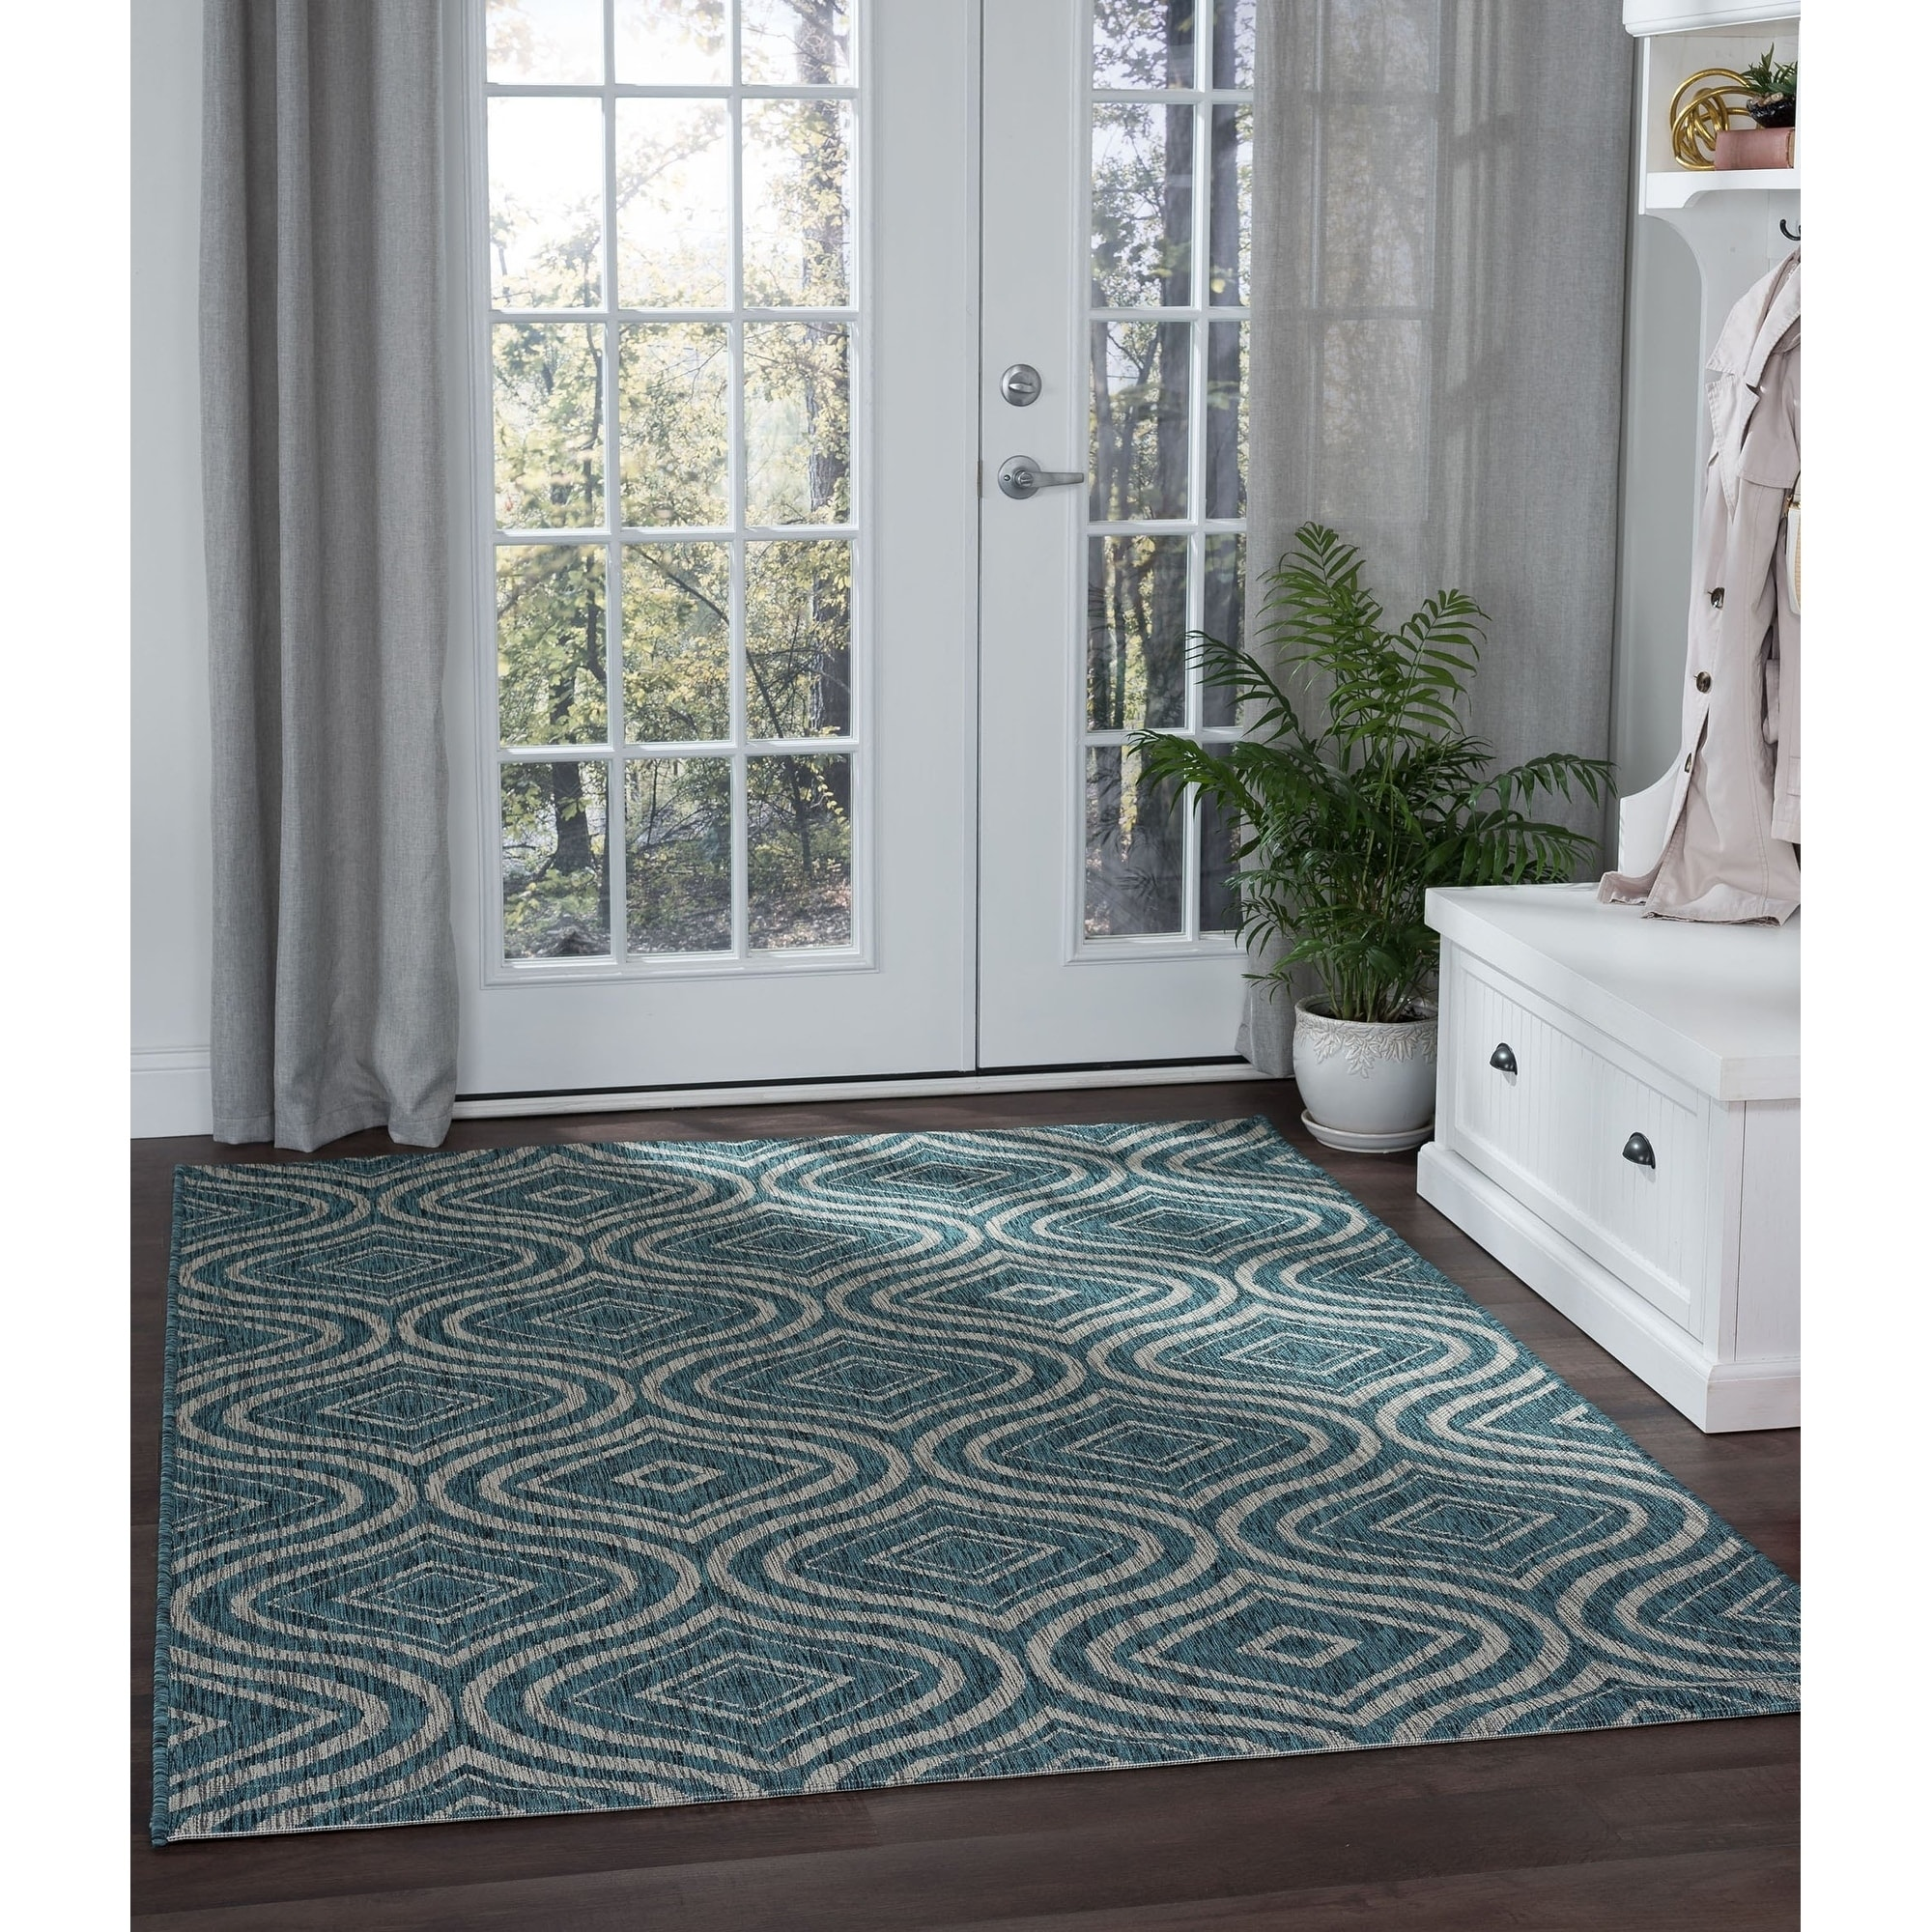 teal kitchen rugs organize my find great home decor deals shopping at alise colonnade contemporary geometric area rug 7 10 x